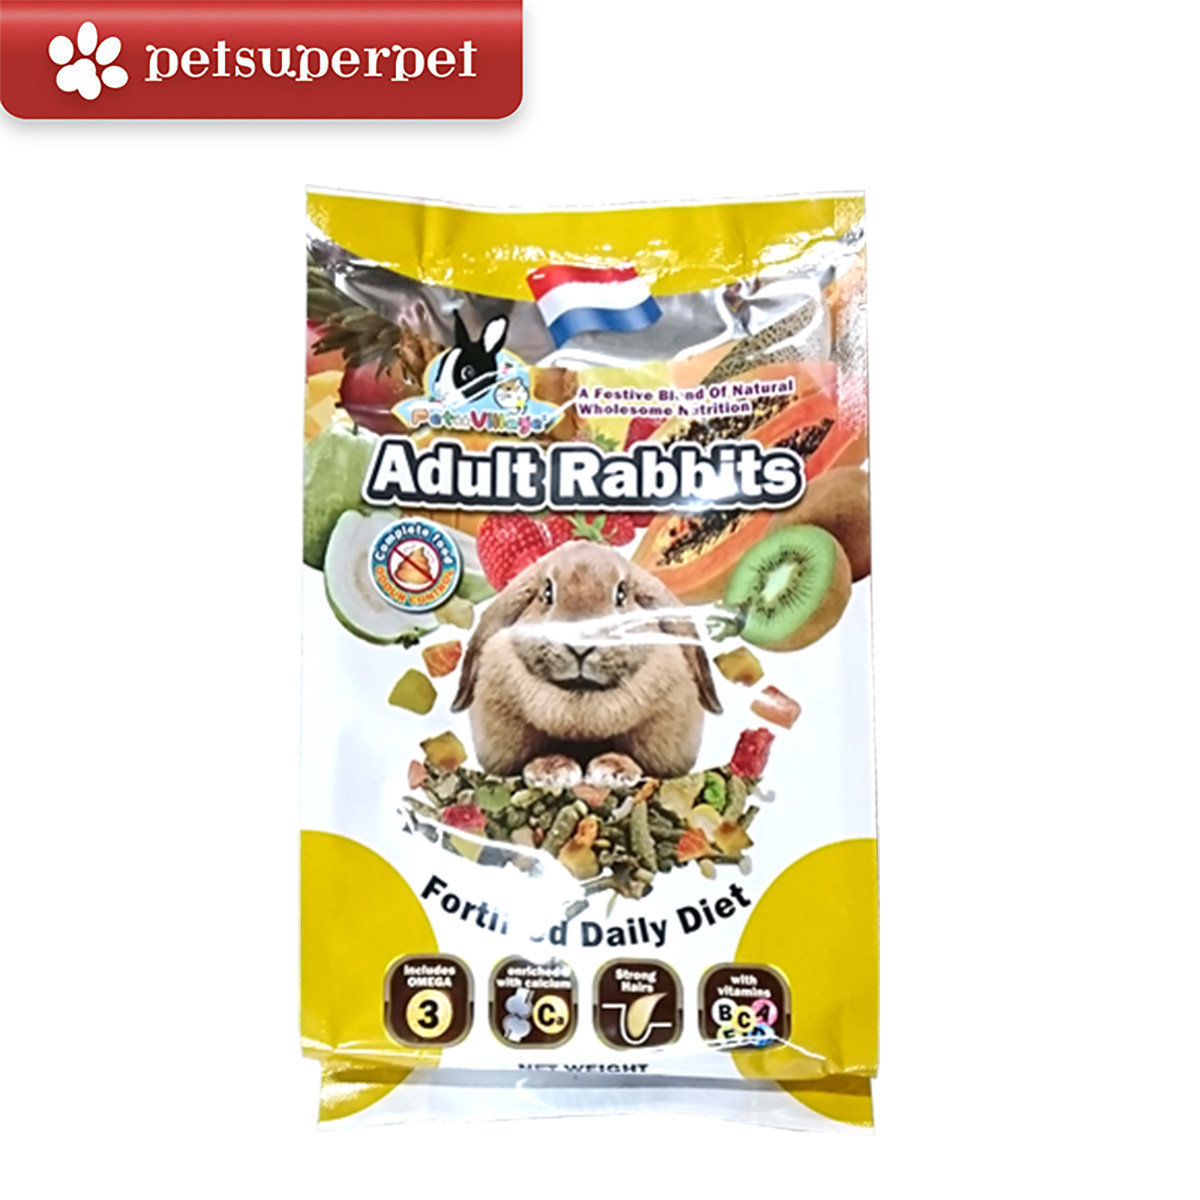 Adult Rabbits Fortified Daily Diet 1000g